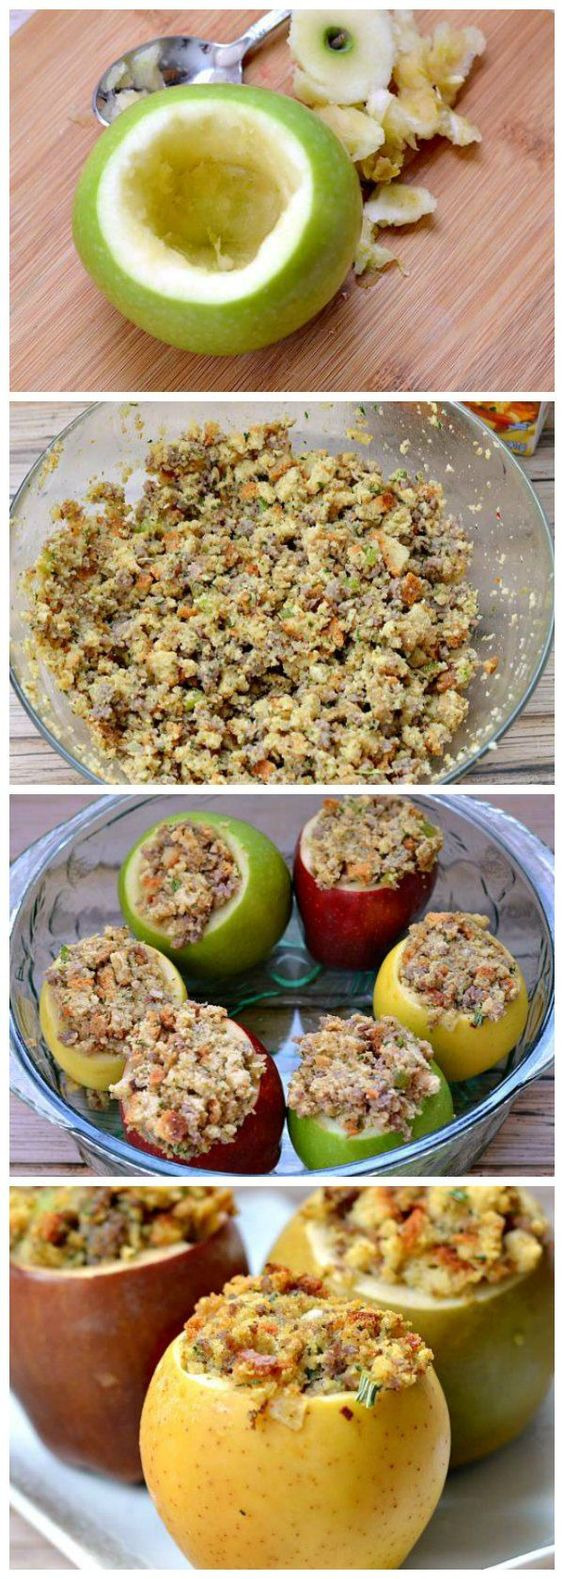 easy baked apples sausage stuffing baked apples chicken recipe apple ...